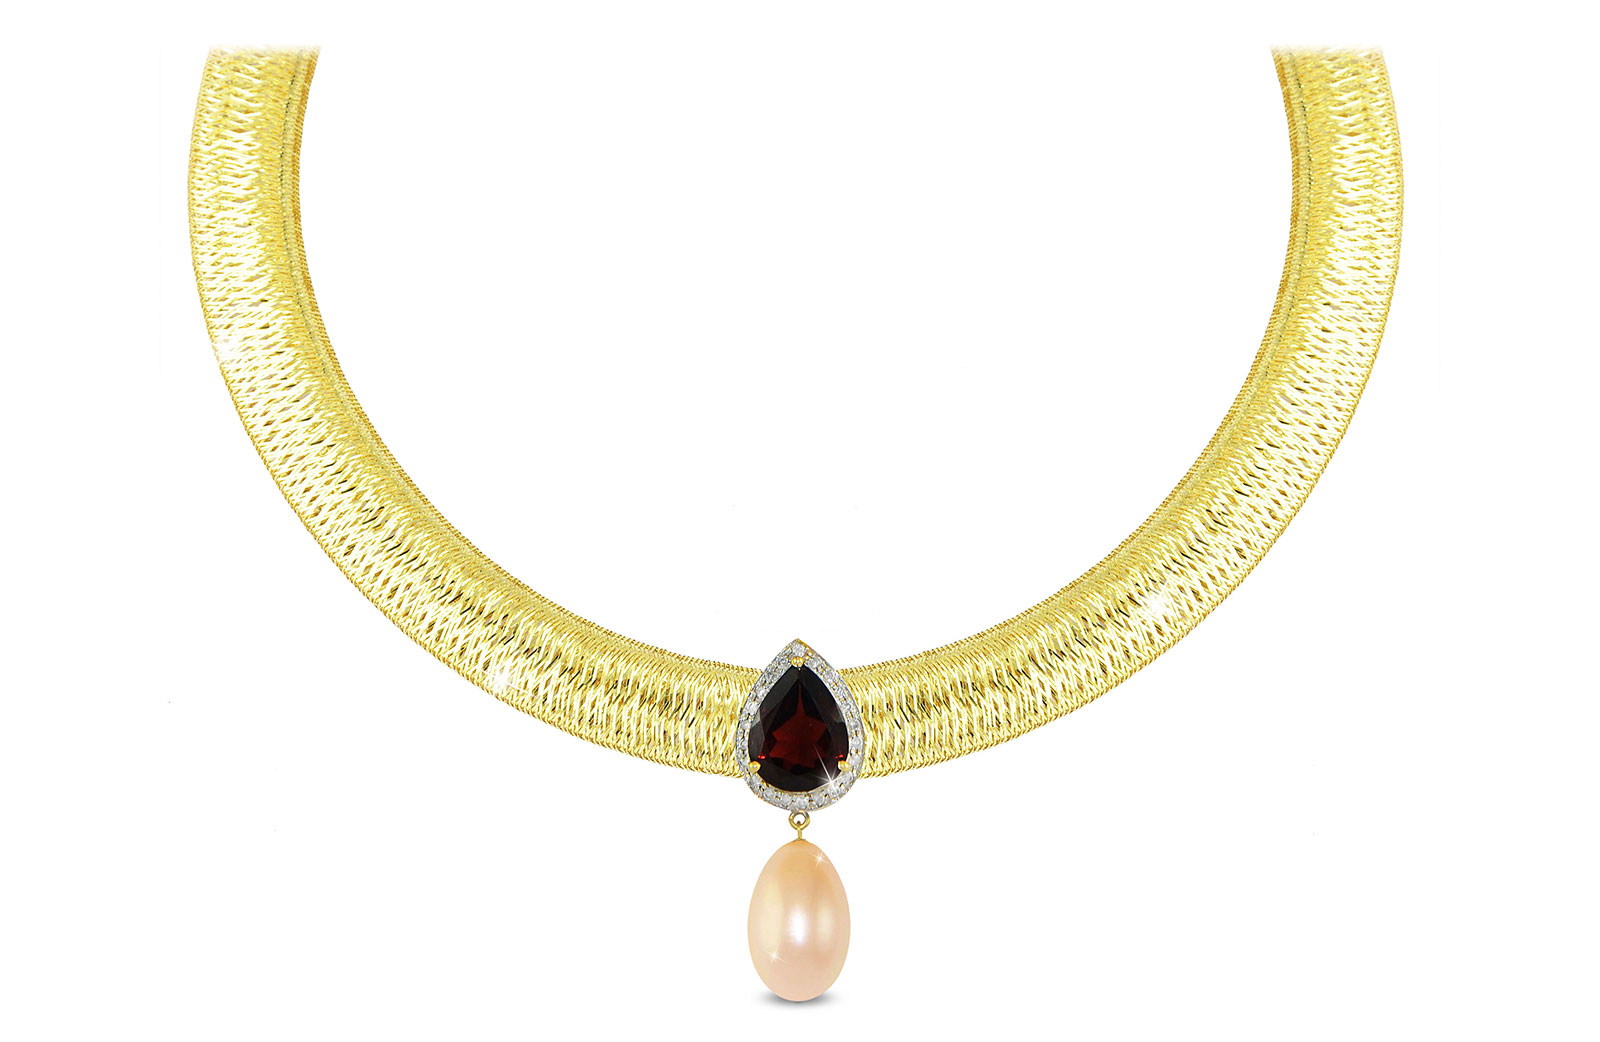 Vera Perla 18K Gold 0.12ct Diamonds, Garnet and 13mm Pink Pearl Necklace